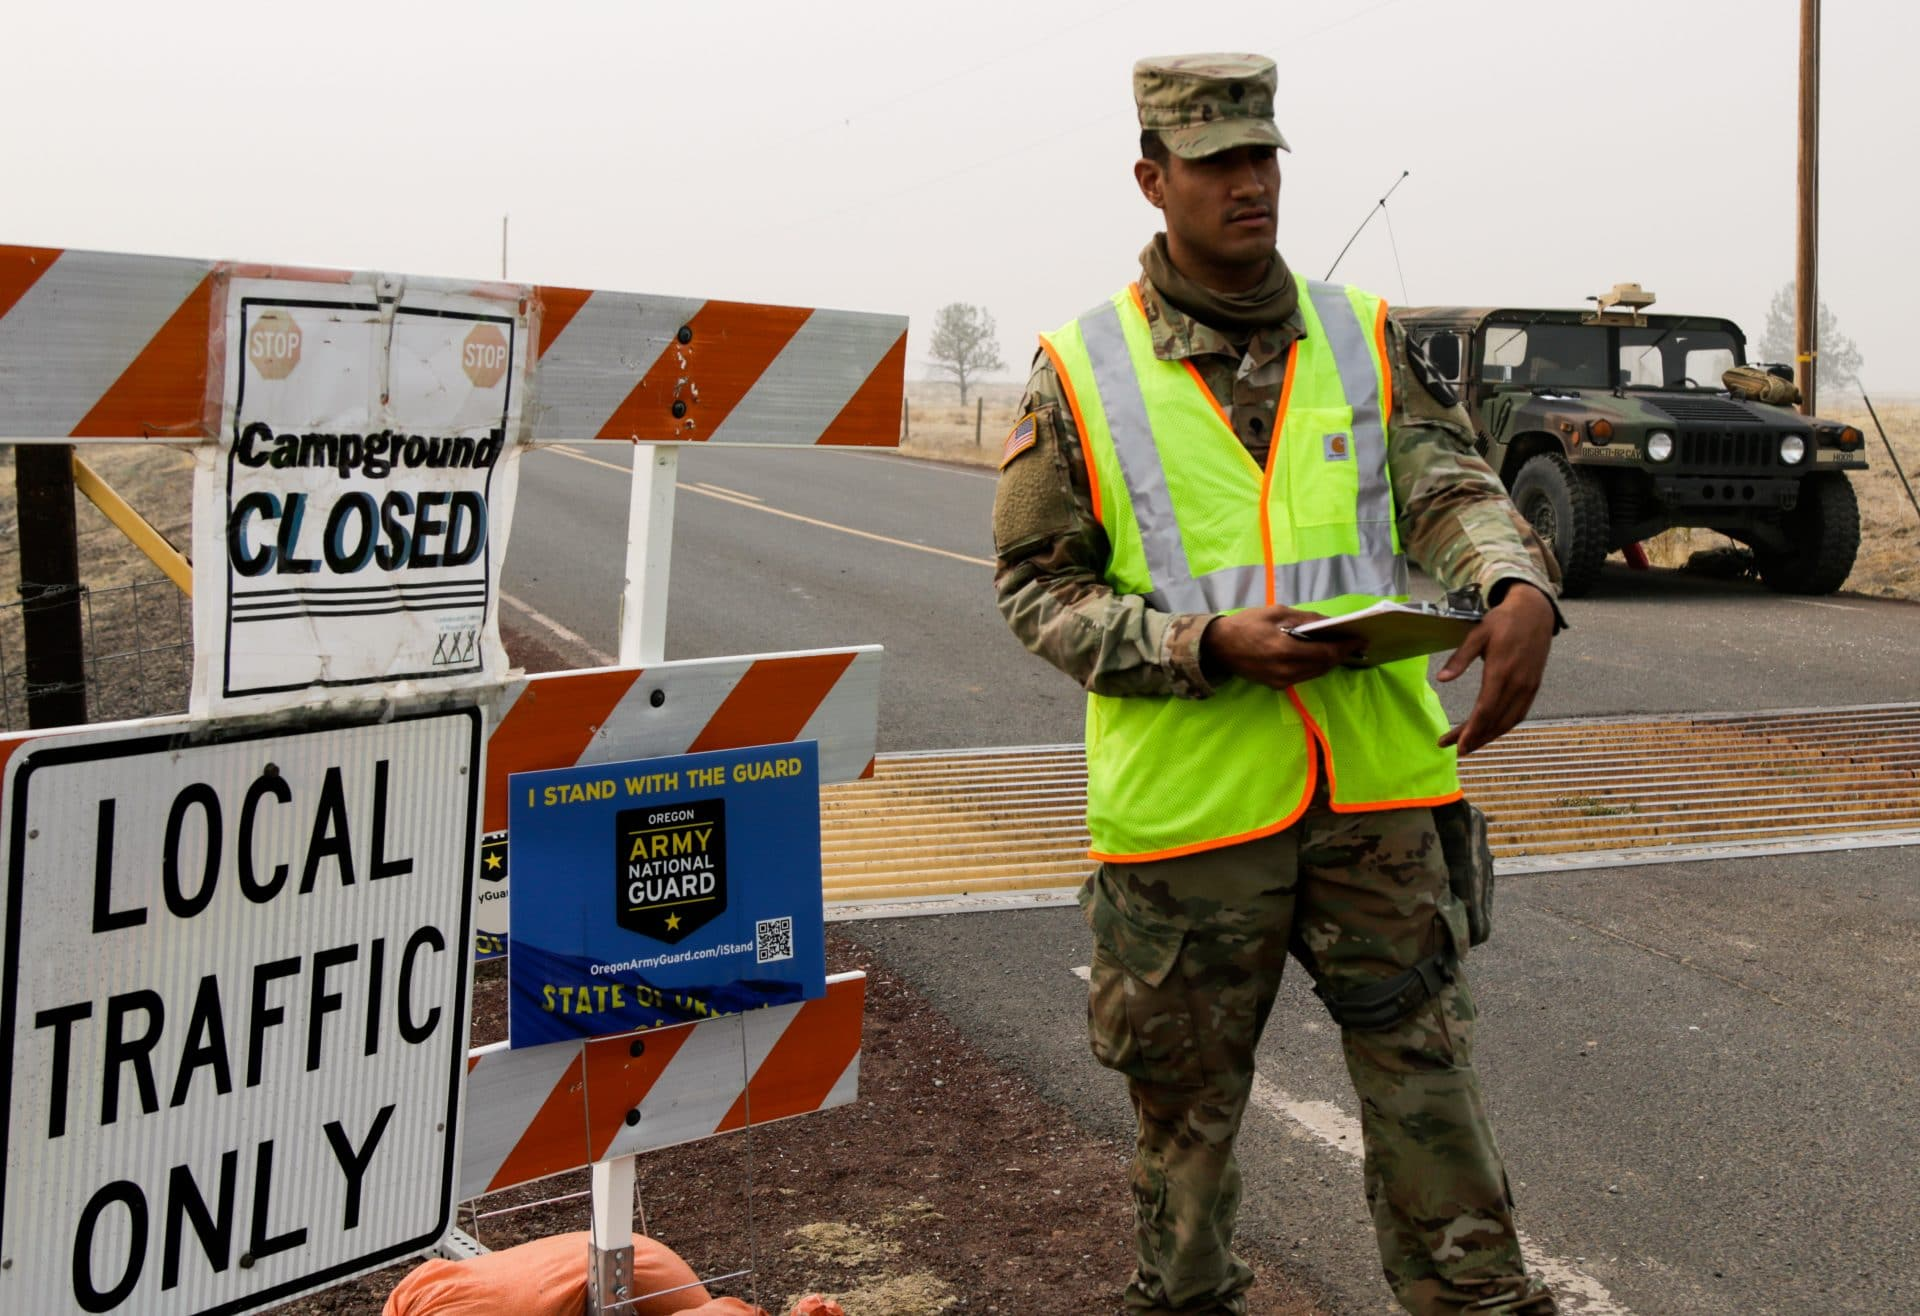 National Guard monitors traffic control point during potential wildfire evacuation